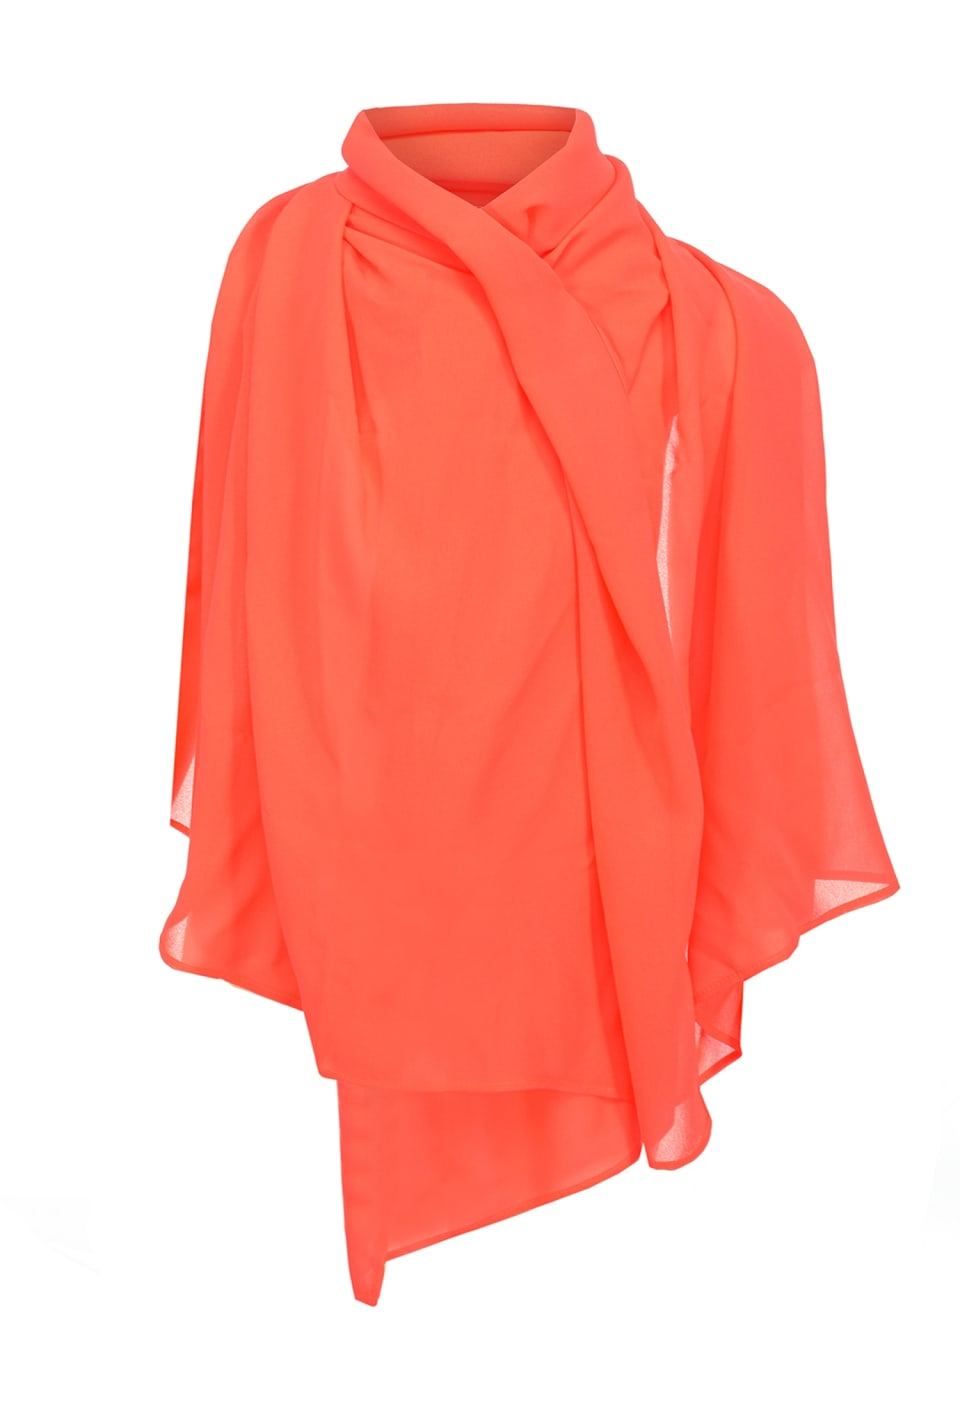 Stola in georgette fluo